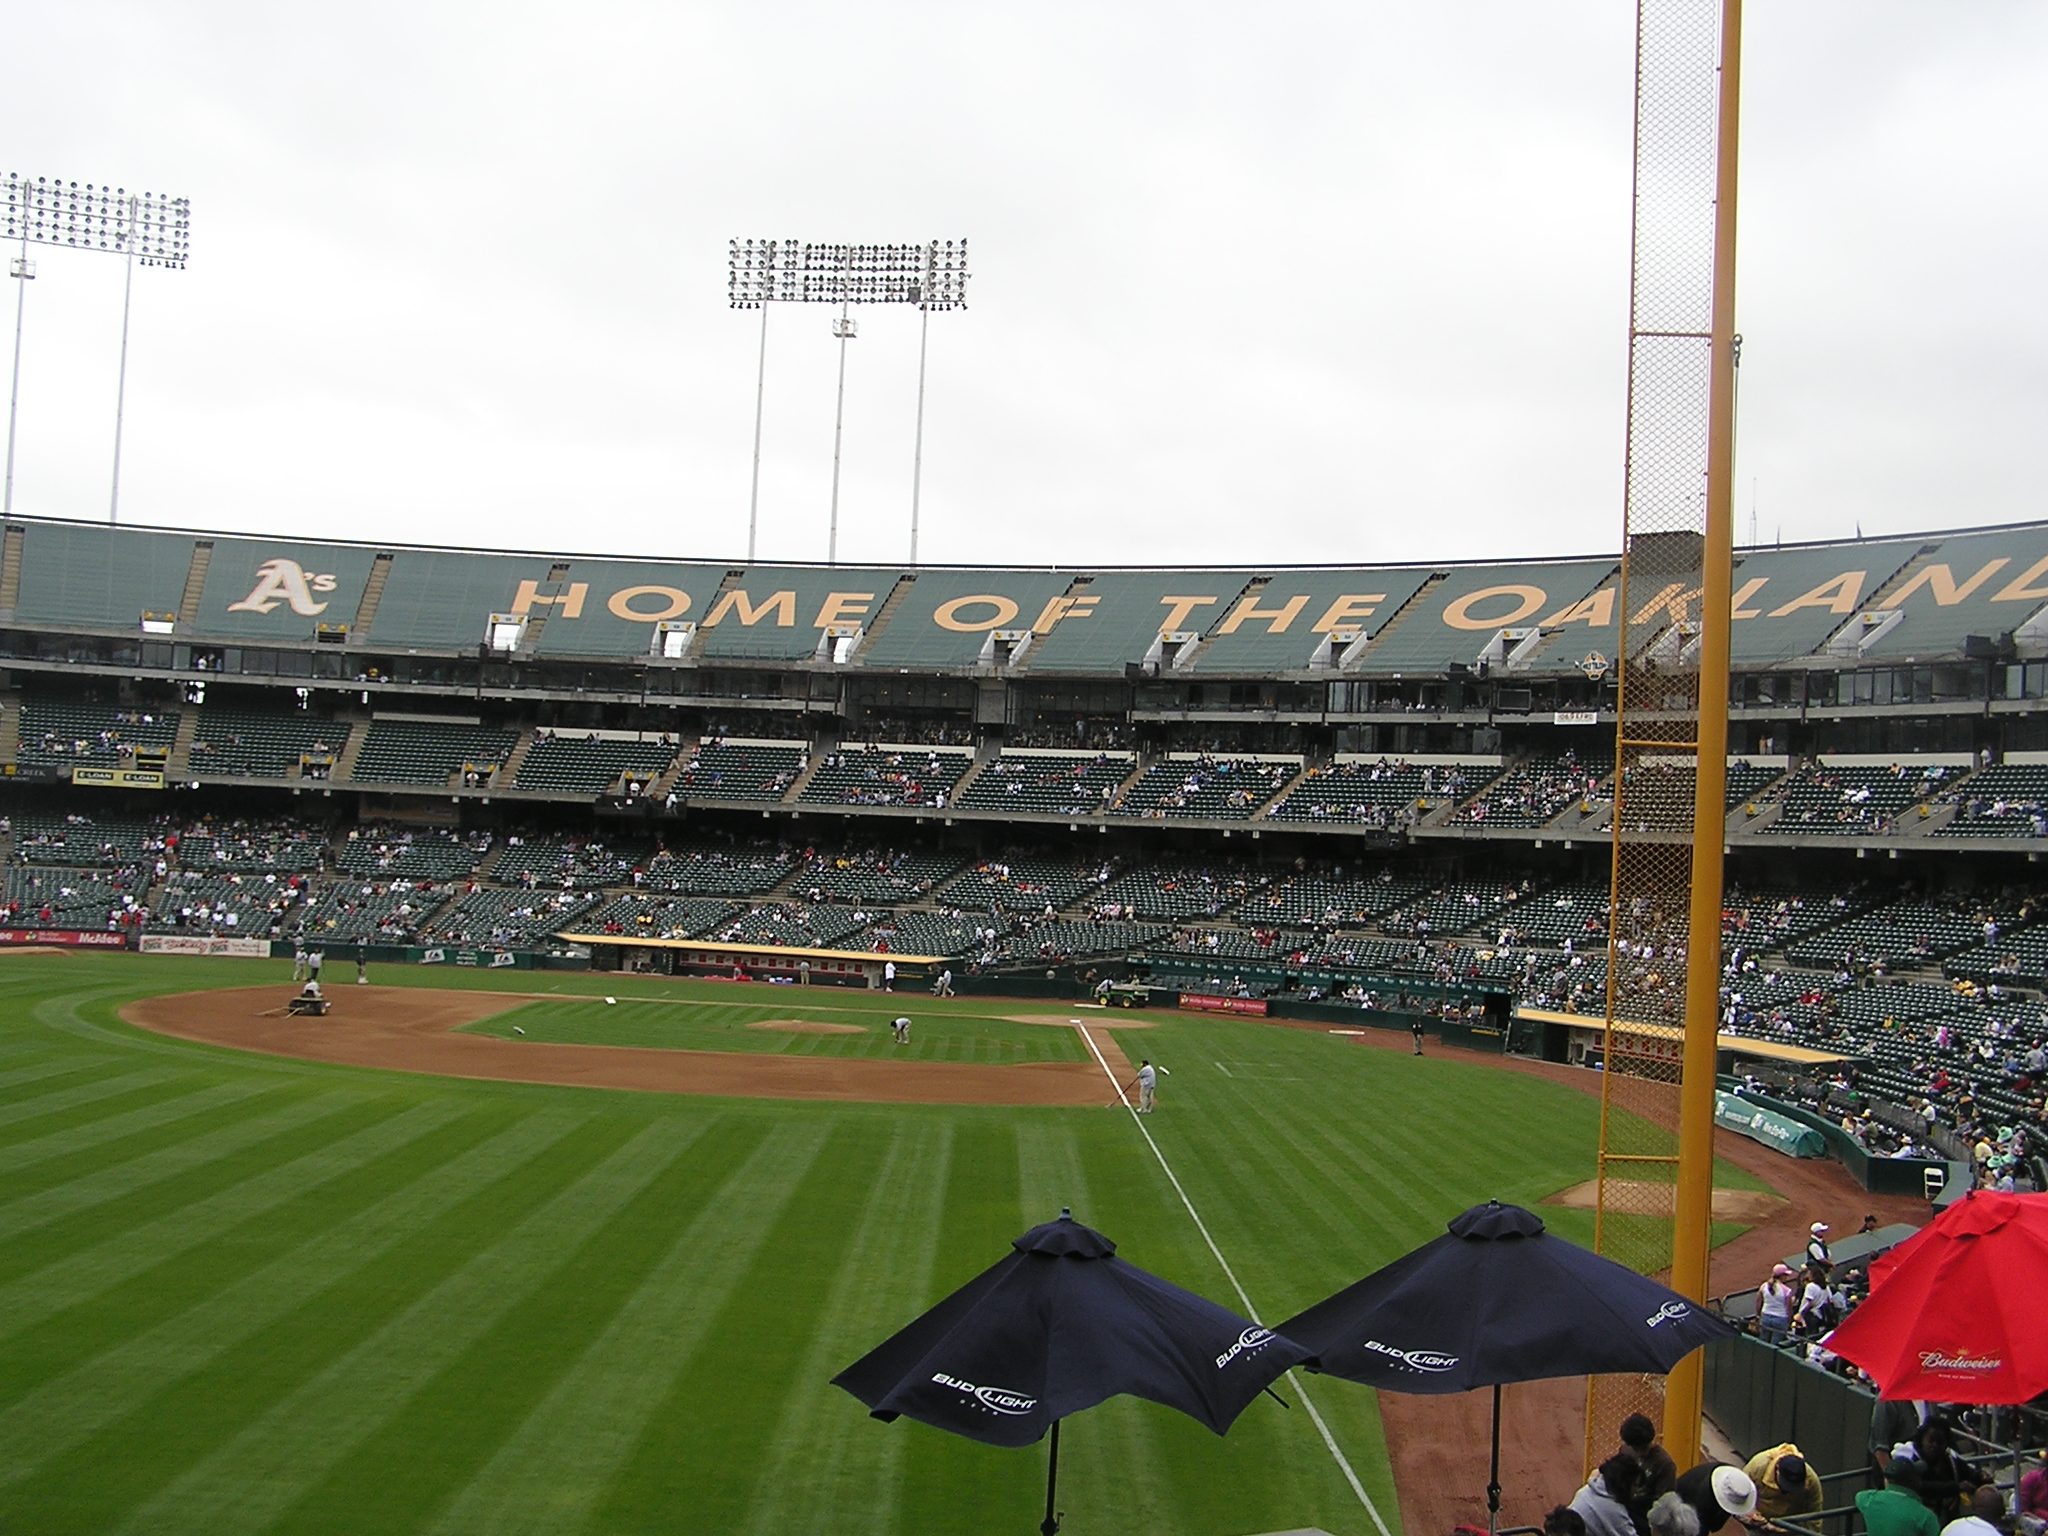 Right Field, McAfee Coliseum, Oakland